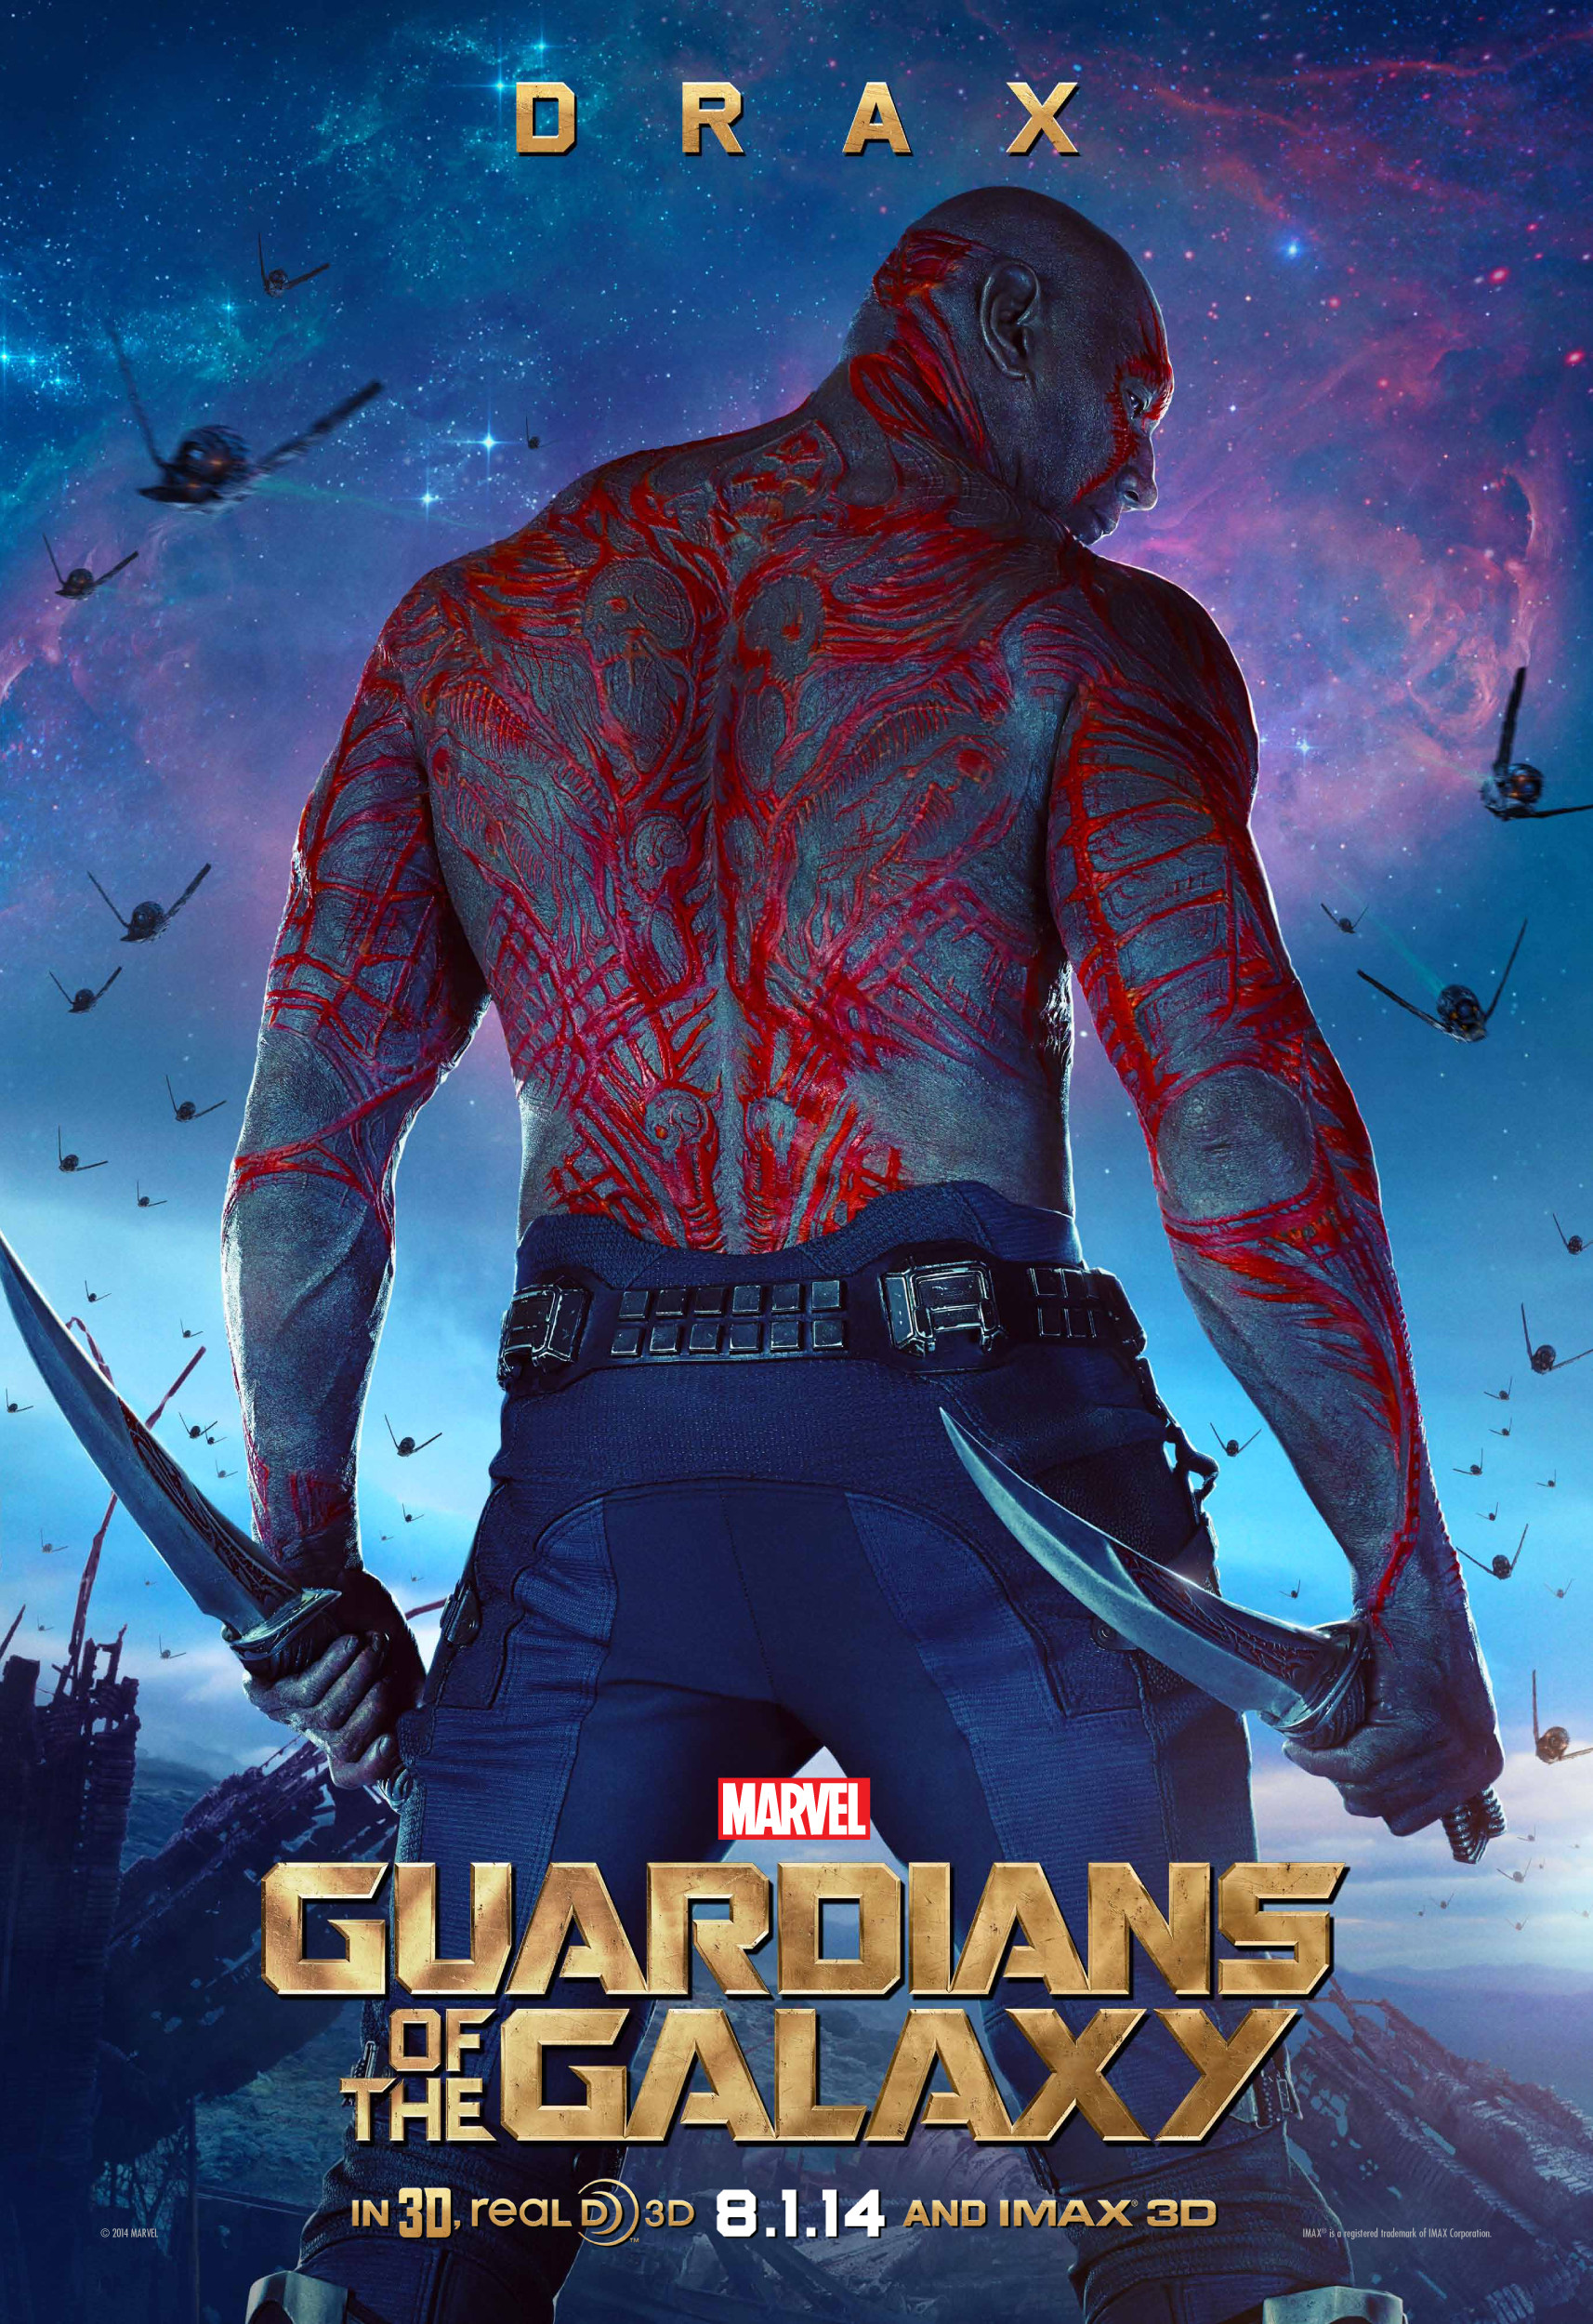 Good Wallpaper Movie Guardians The Galaxy - Guardians-of-the-Galaxy-Drax-Wallpaper  Pictures_632793.jpg